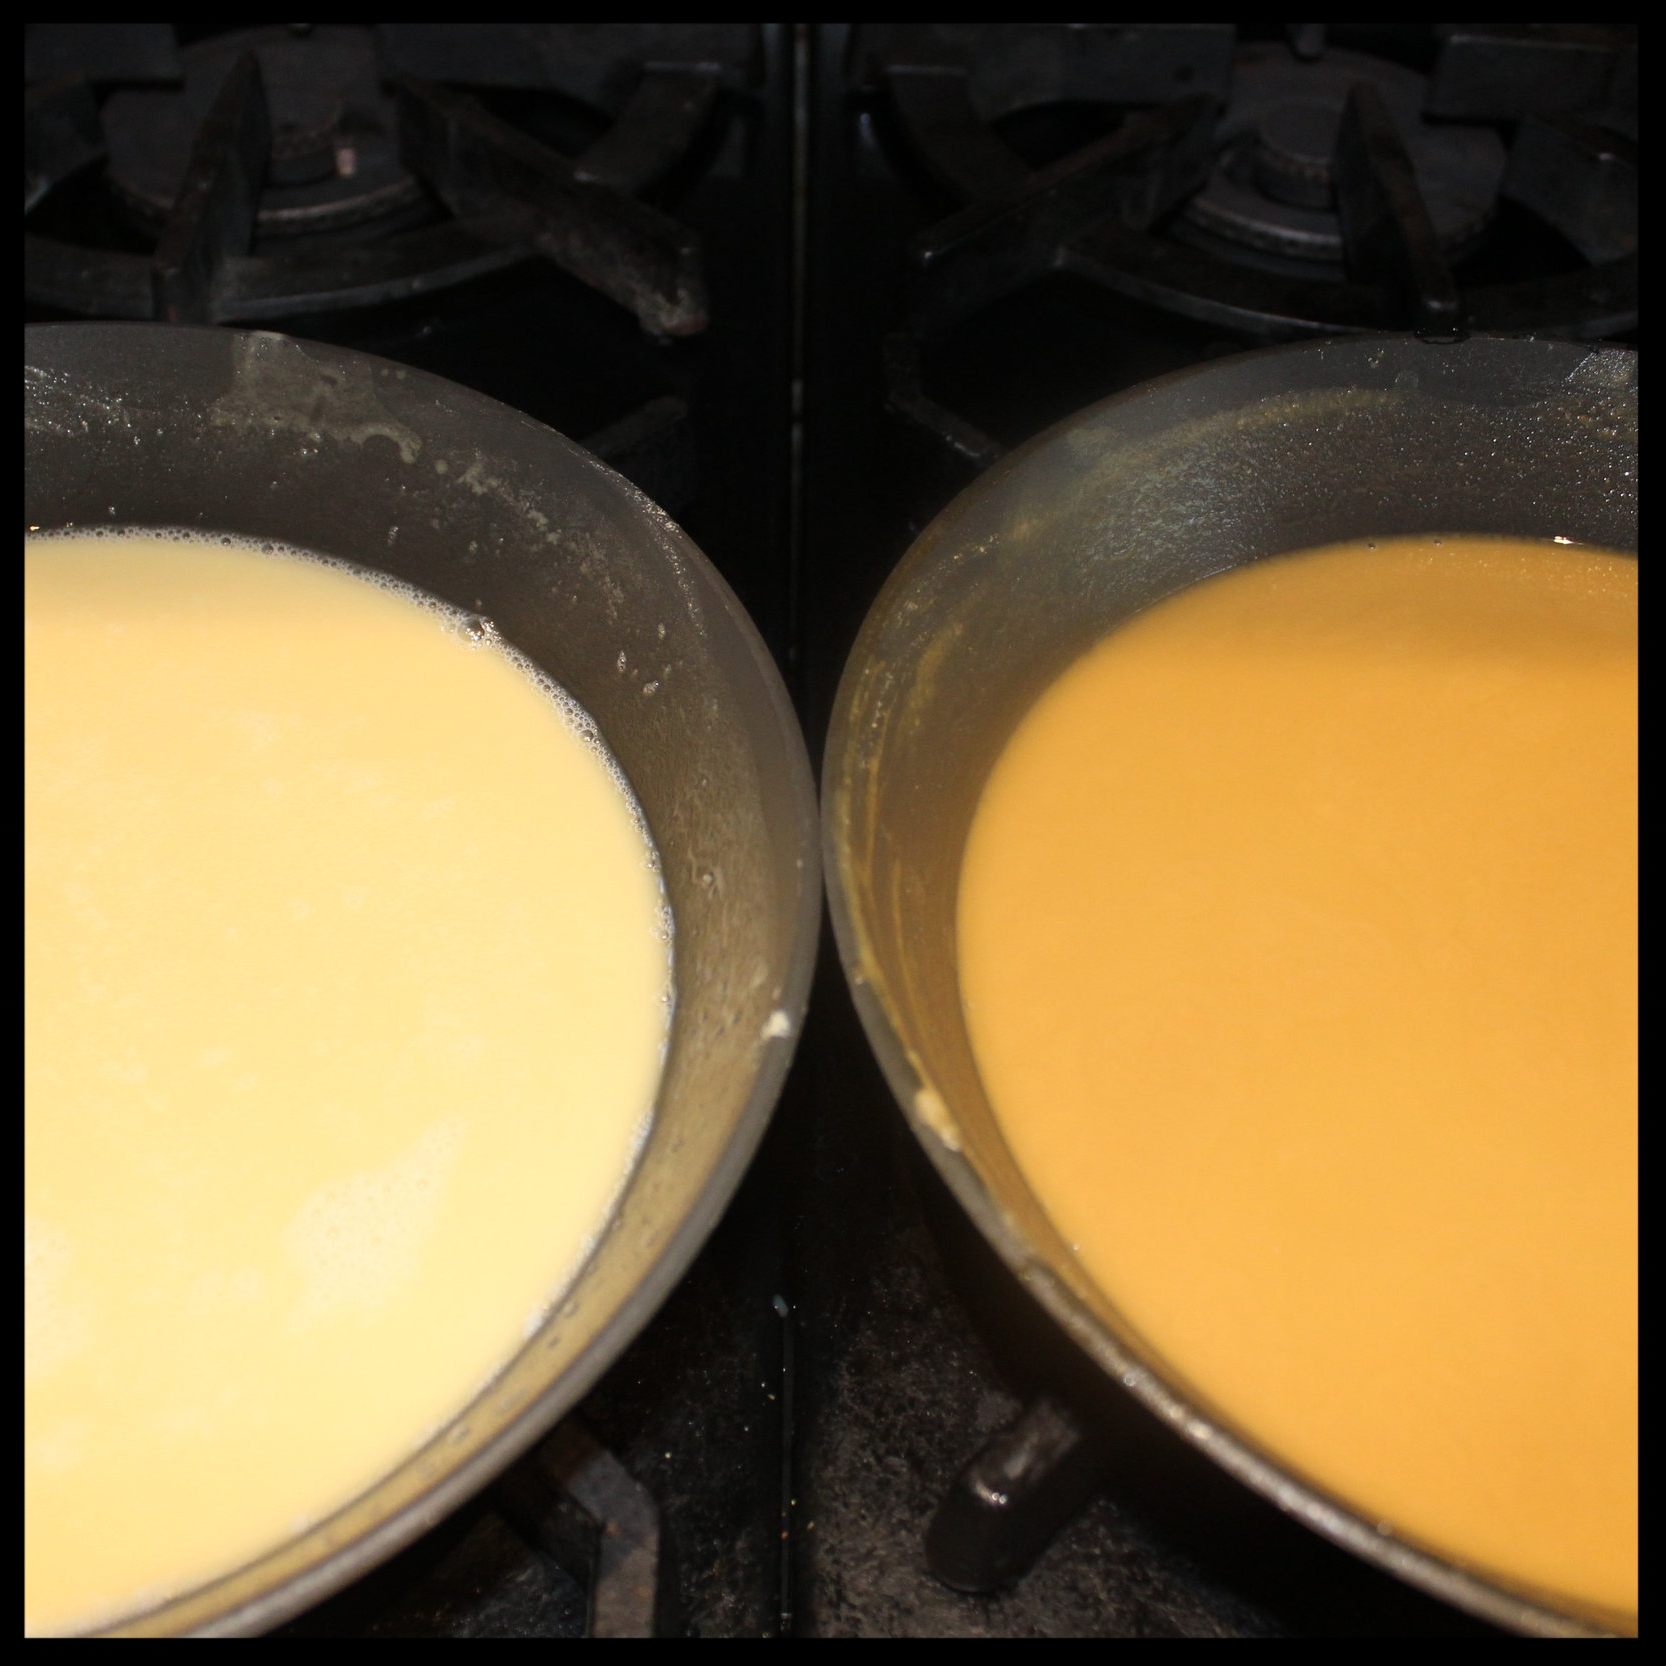 """45 minutes:   It's clear that the oven roux on the left still is blonde, while the stovetop roux is deepening in color, verging on becoming """"brown roux."""""""